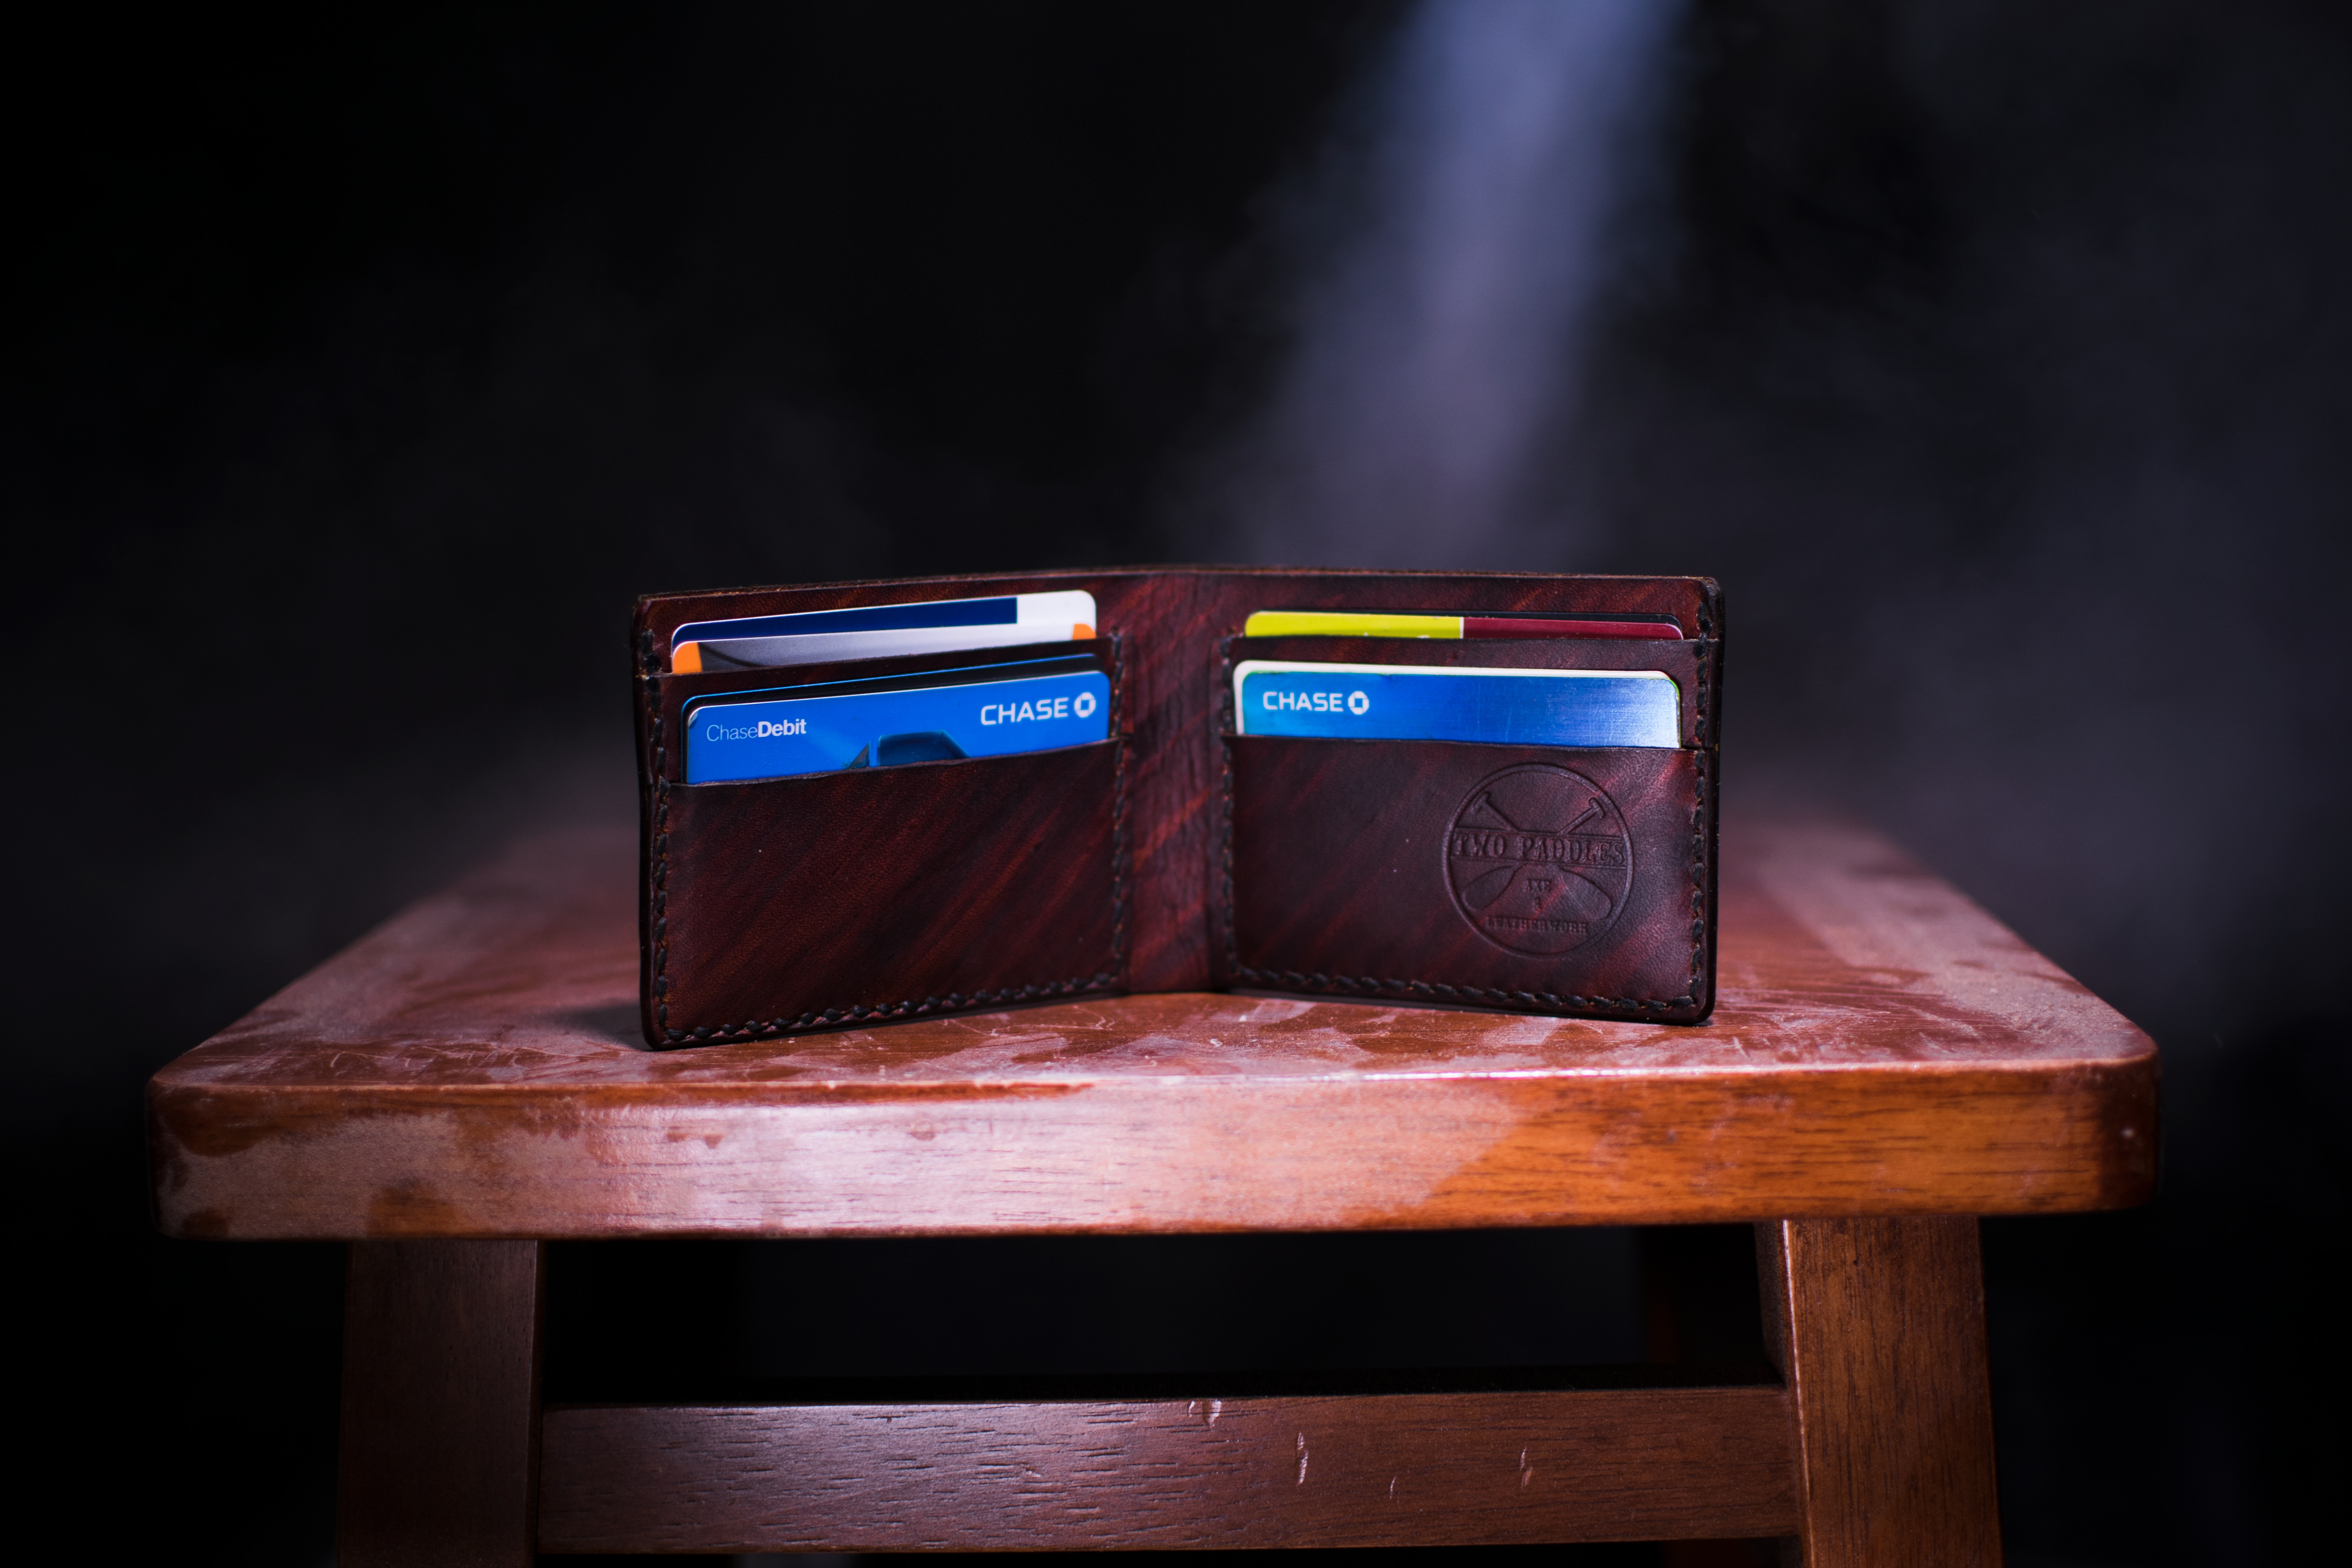 Lost wallet on a stool